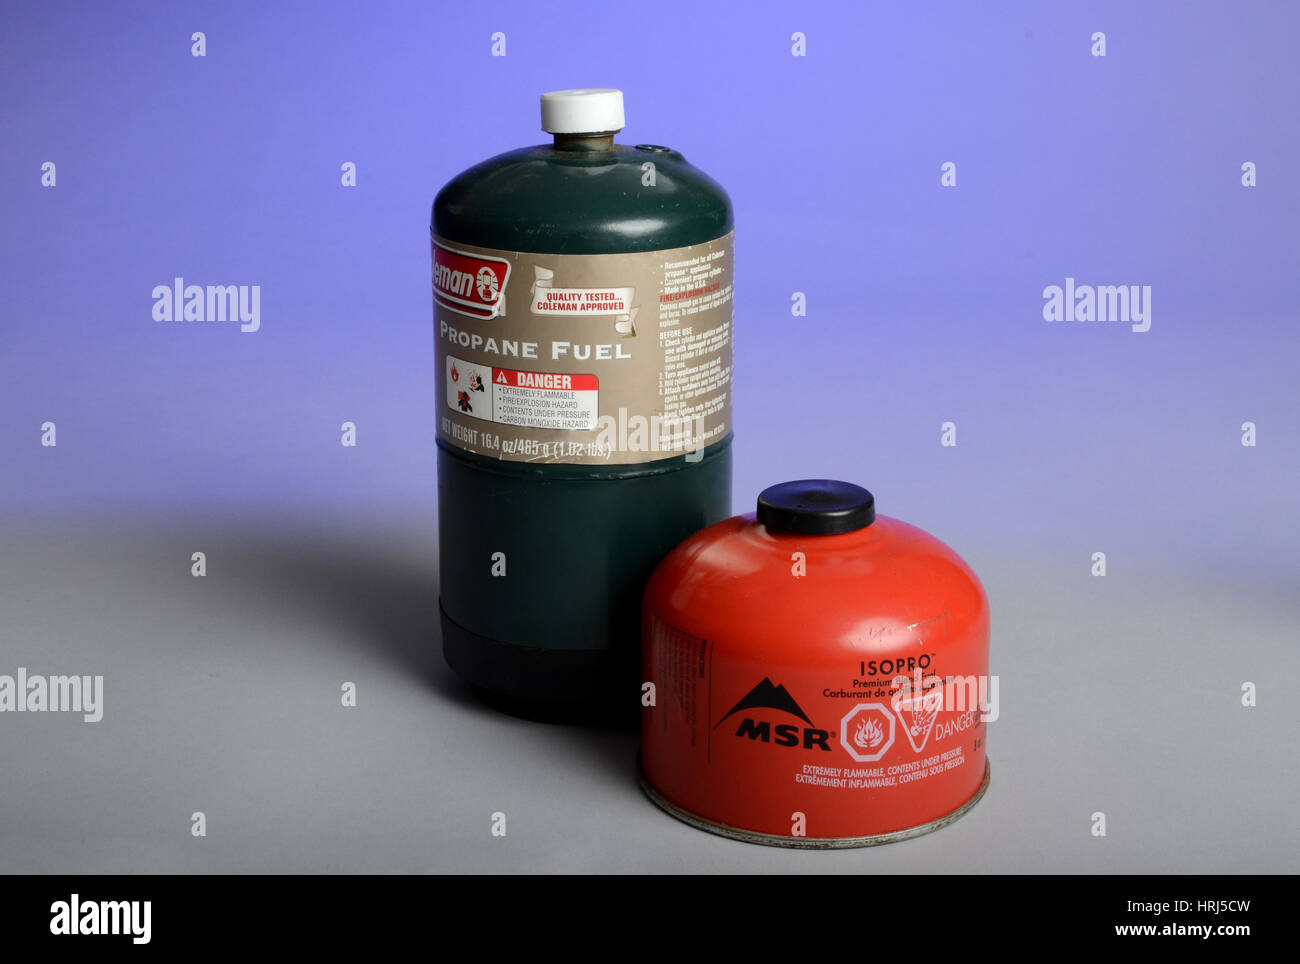 Propane and Isopro - Stock Image